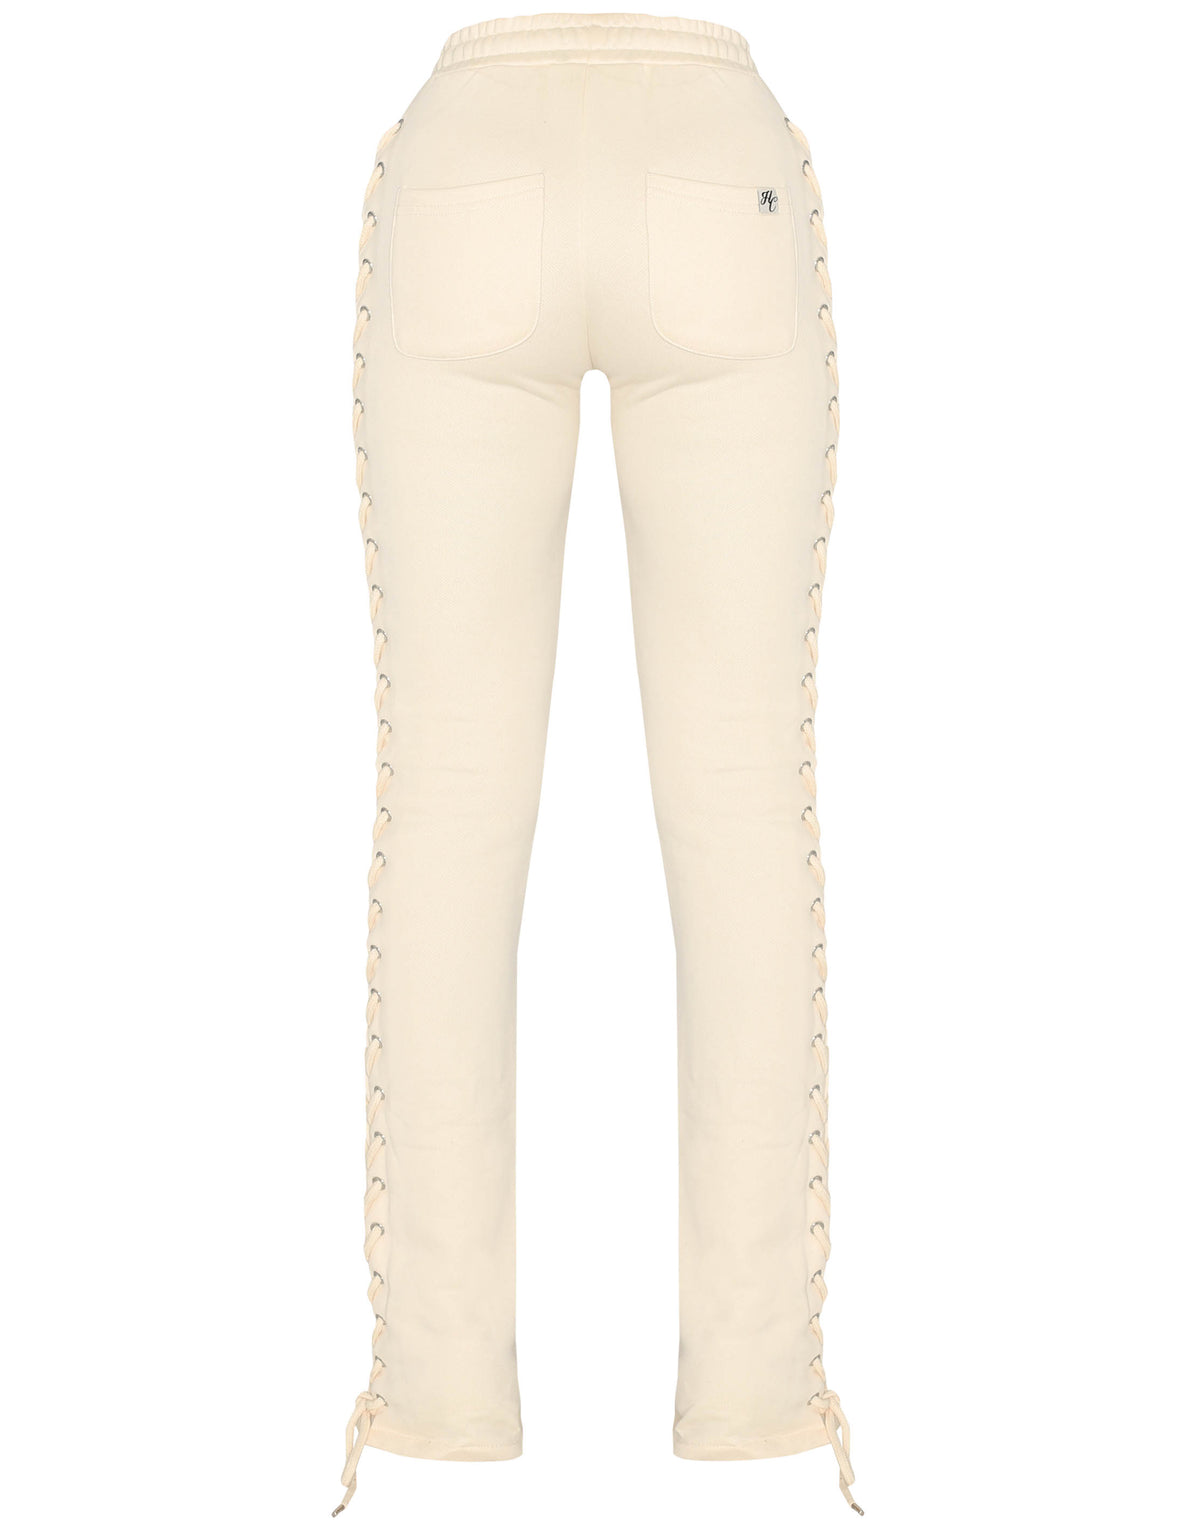 Wynn Laced Up Cream Off White Pants